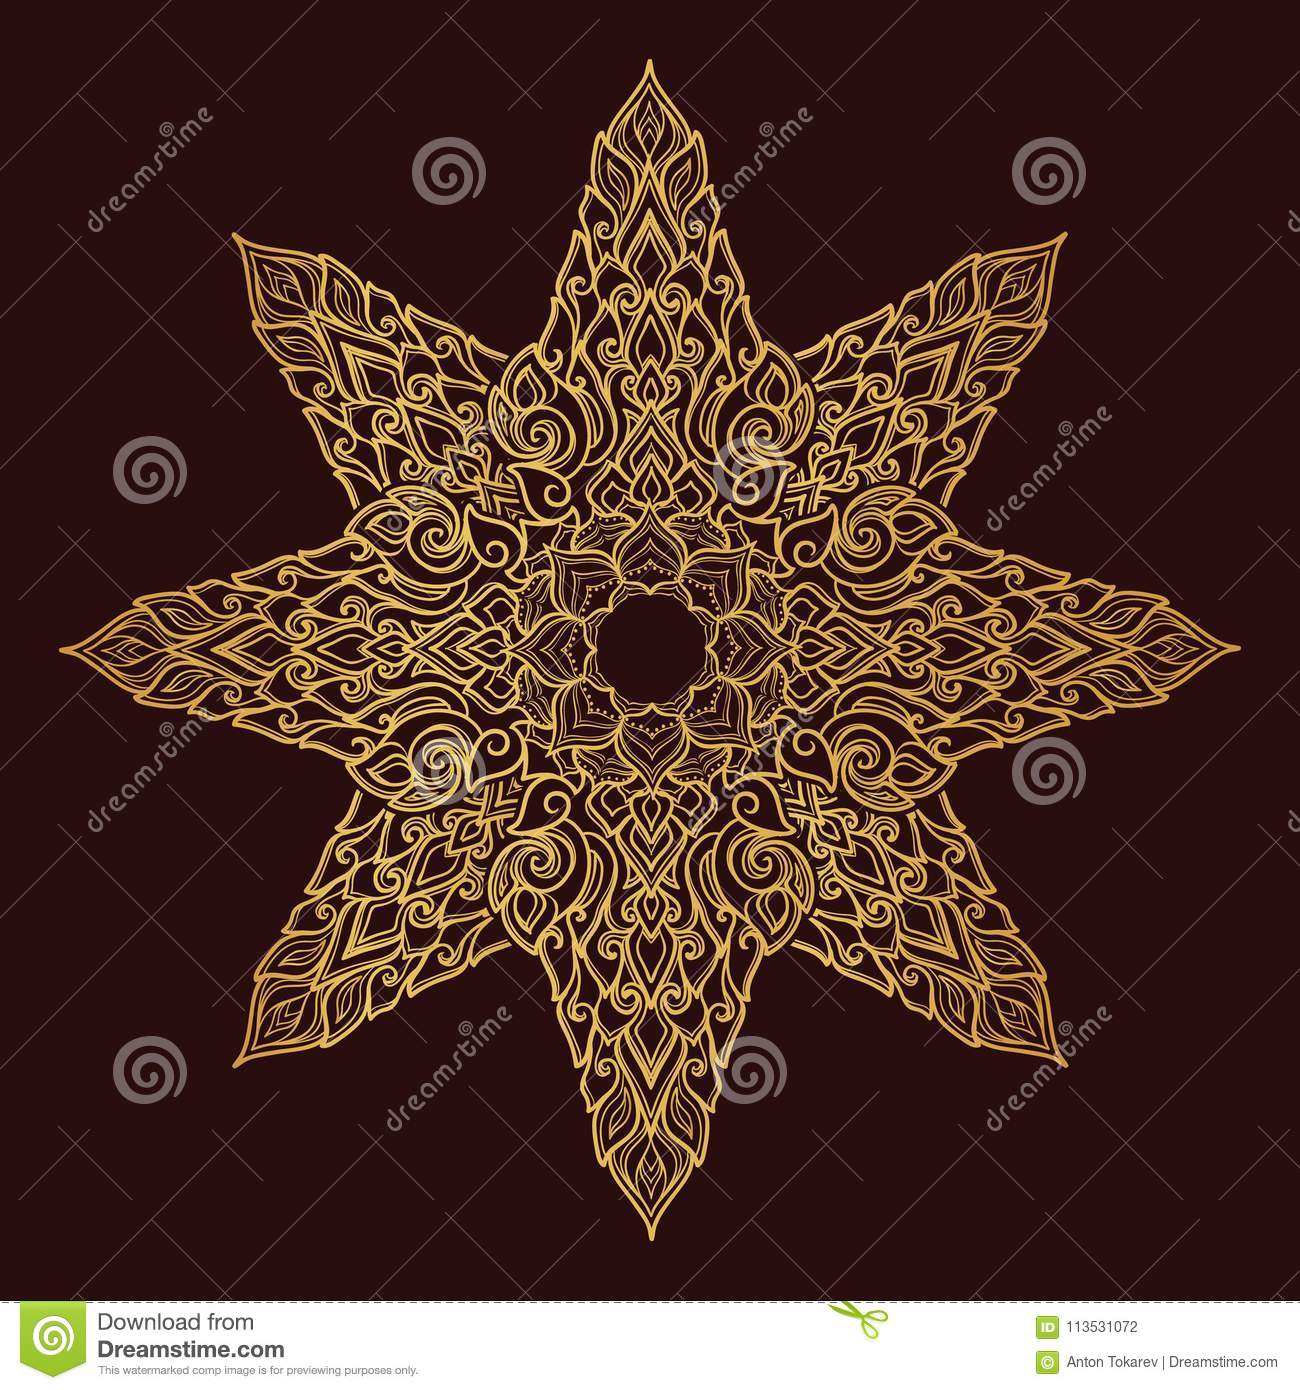 Popular decorative motif in South Eastern Asia. Intricate star shaped ornament. Hand drawing. Golden mandala Isolated on